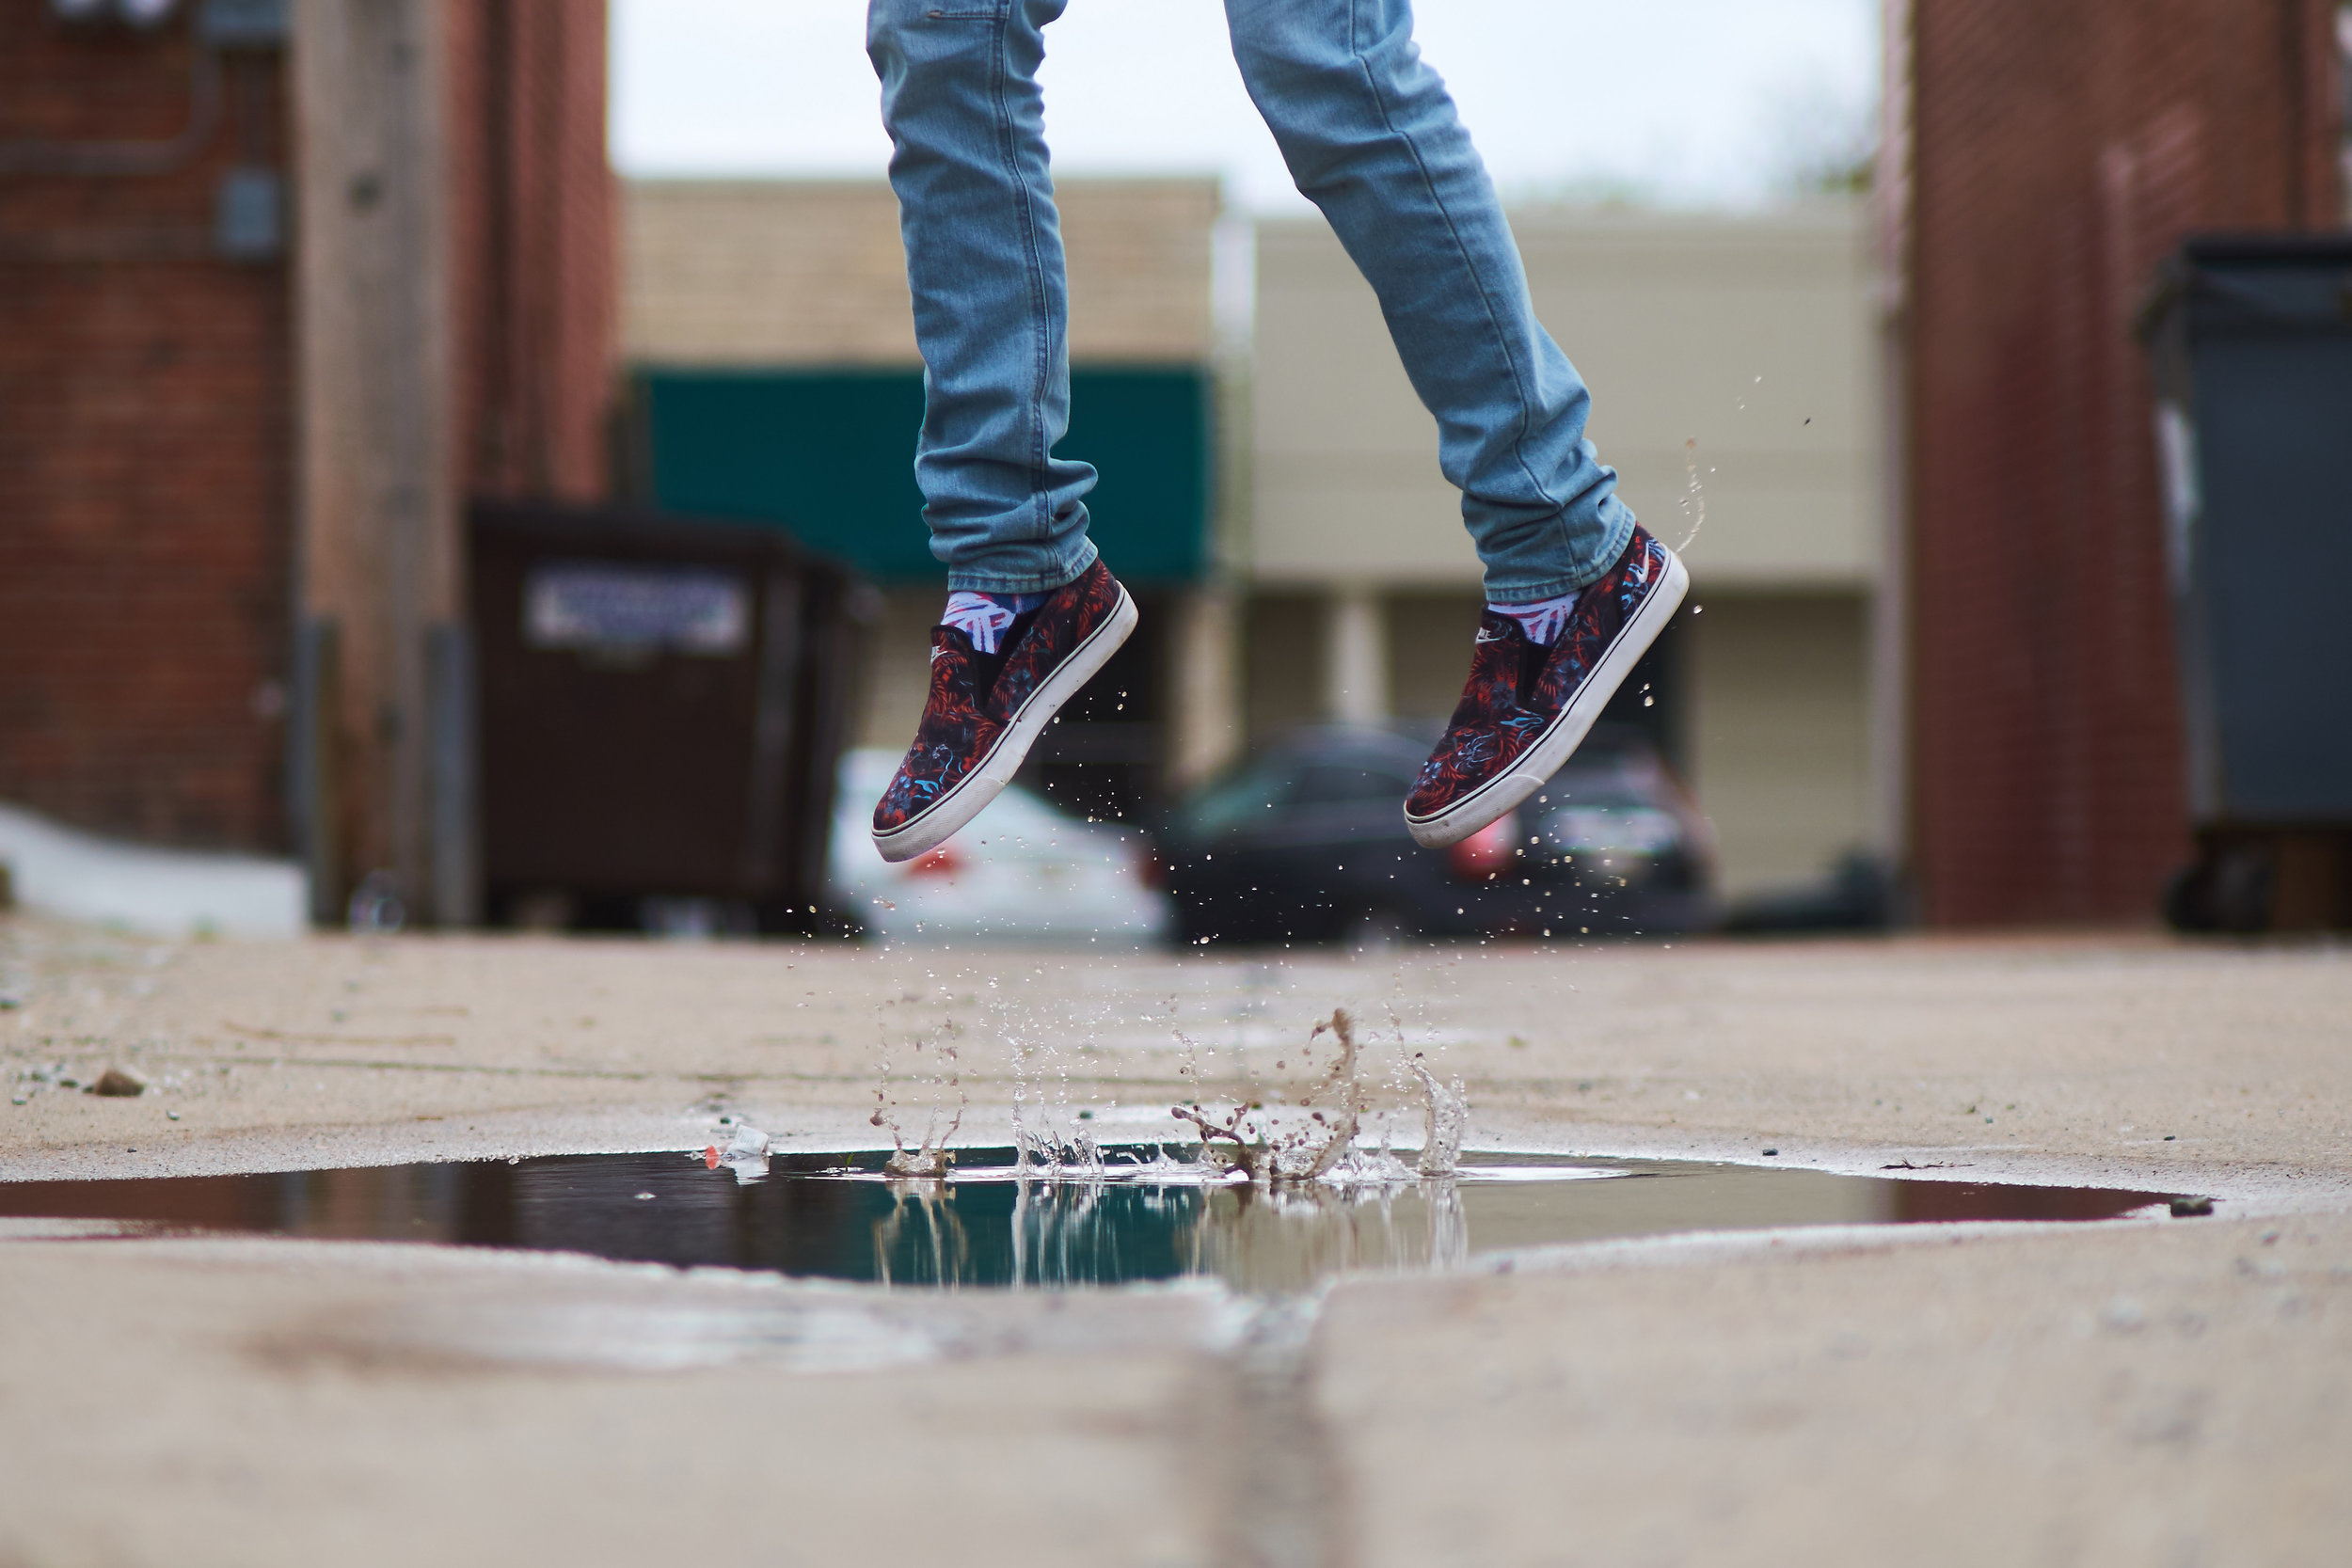 A person's legs in red shoes jump over a puddle in an alleyway.